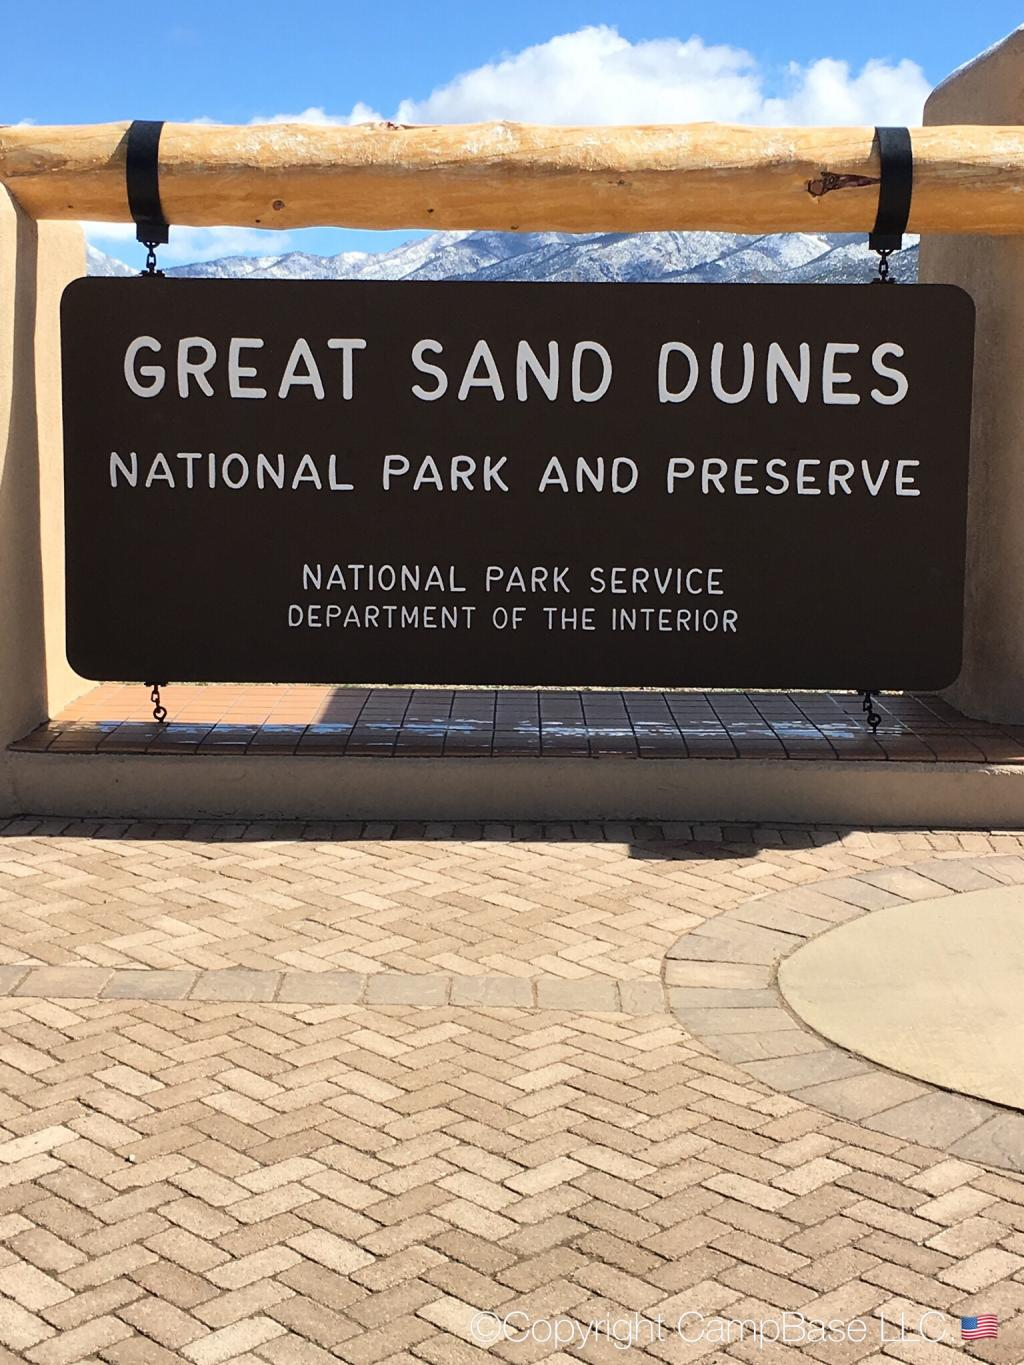 Great Sand Dunes Oasis Campground Mosca Colorado